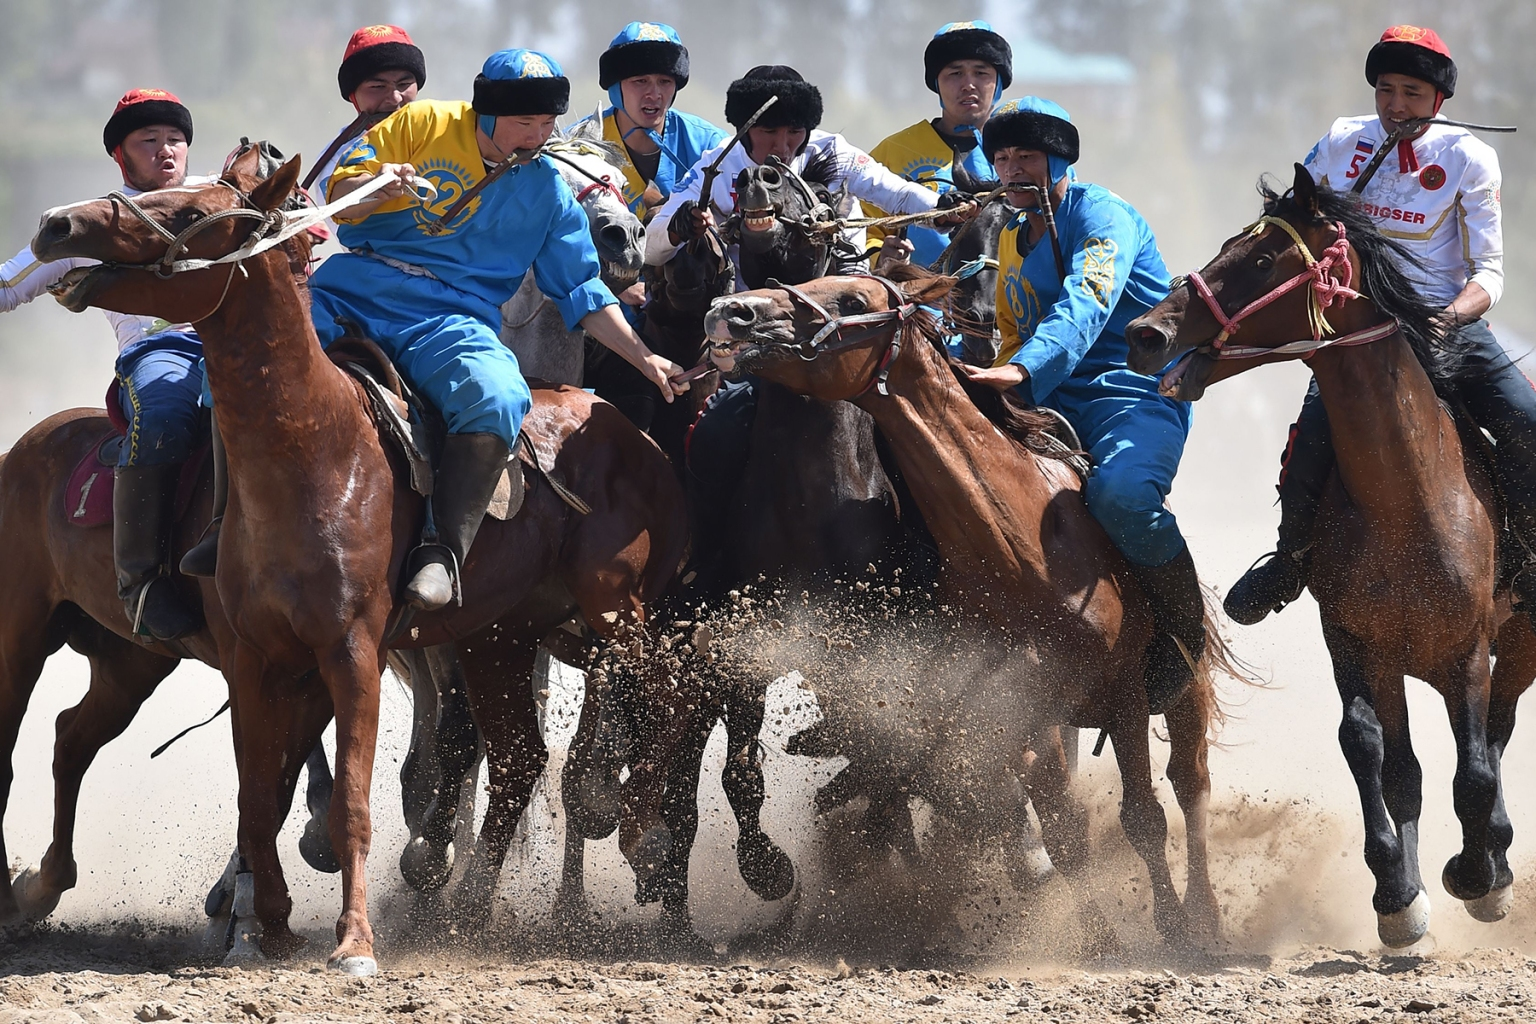 Russian and Kazakh riders play the traditional Central Asian sport buzkashi during the World Nomad Games in Cholpon-Ata, eastern Kirghizstan, on Sept. 5. Players compete for possession of a headless animal carcass and try to get it in a goal. VYACHESLAV OSELEDKO/AFP/Getty Images